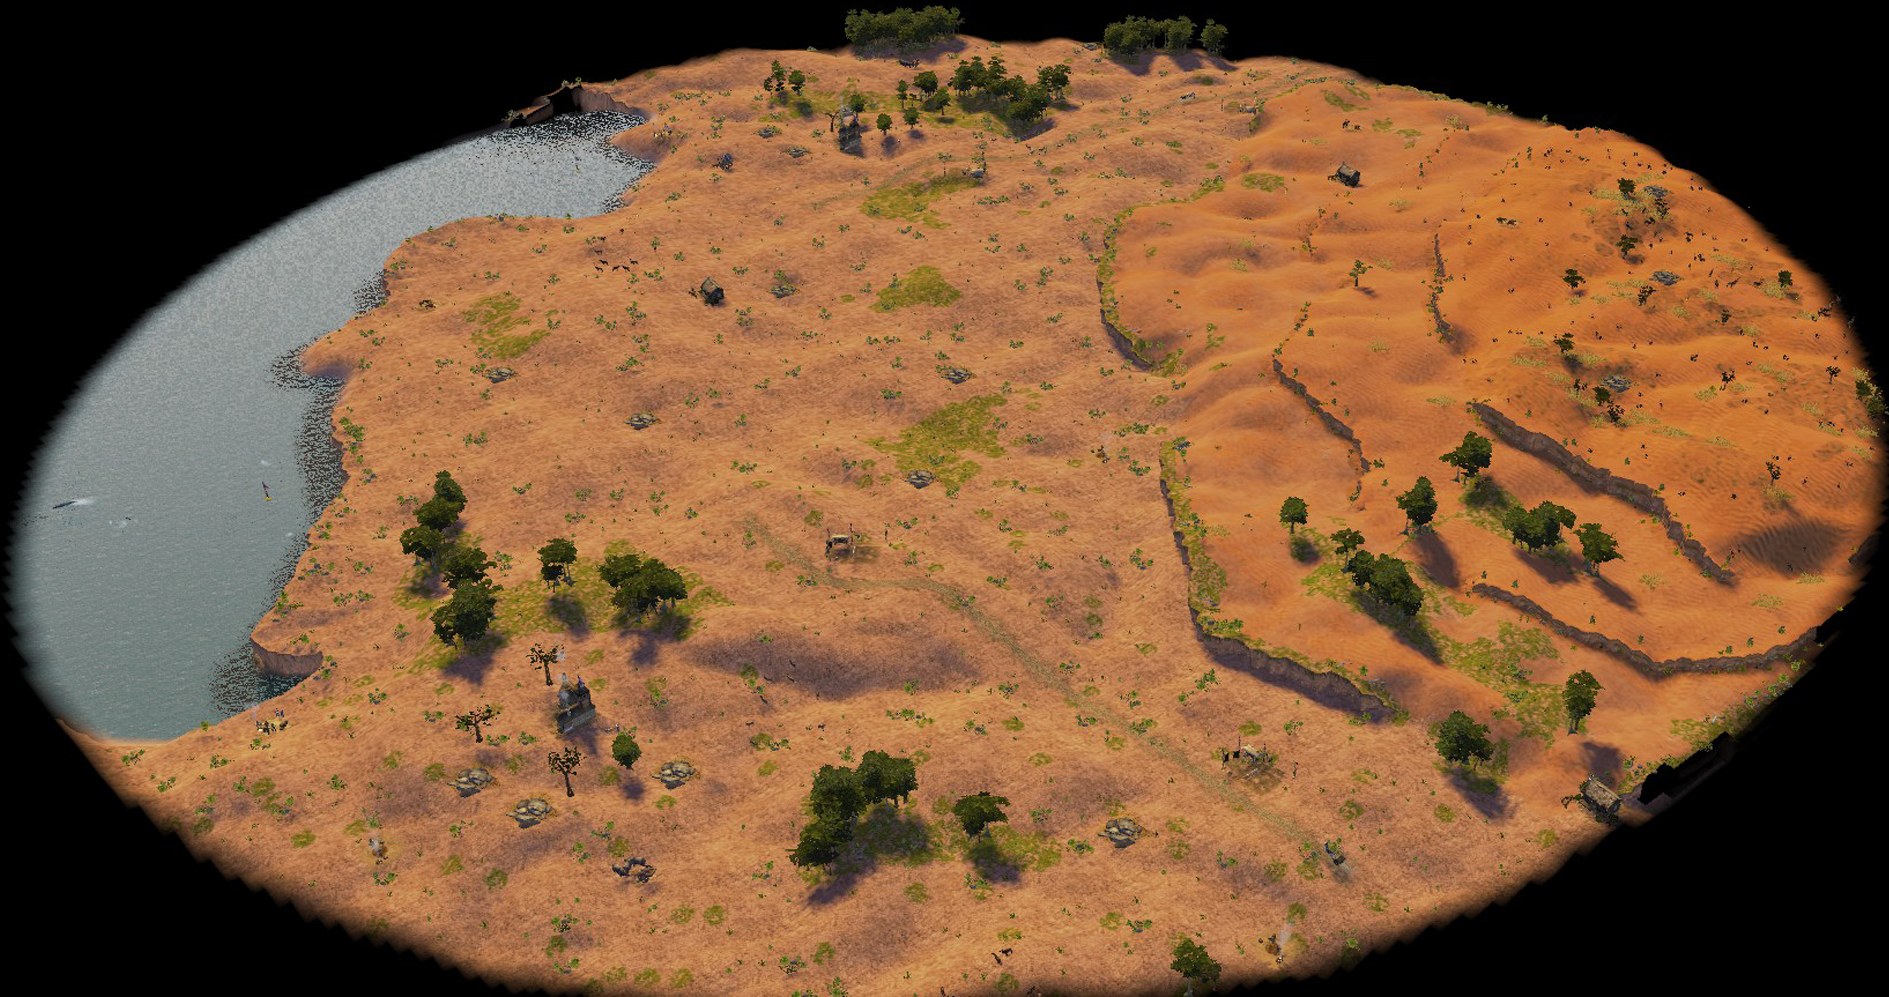 The entire map view